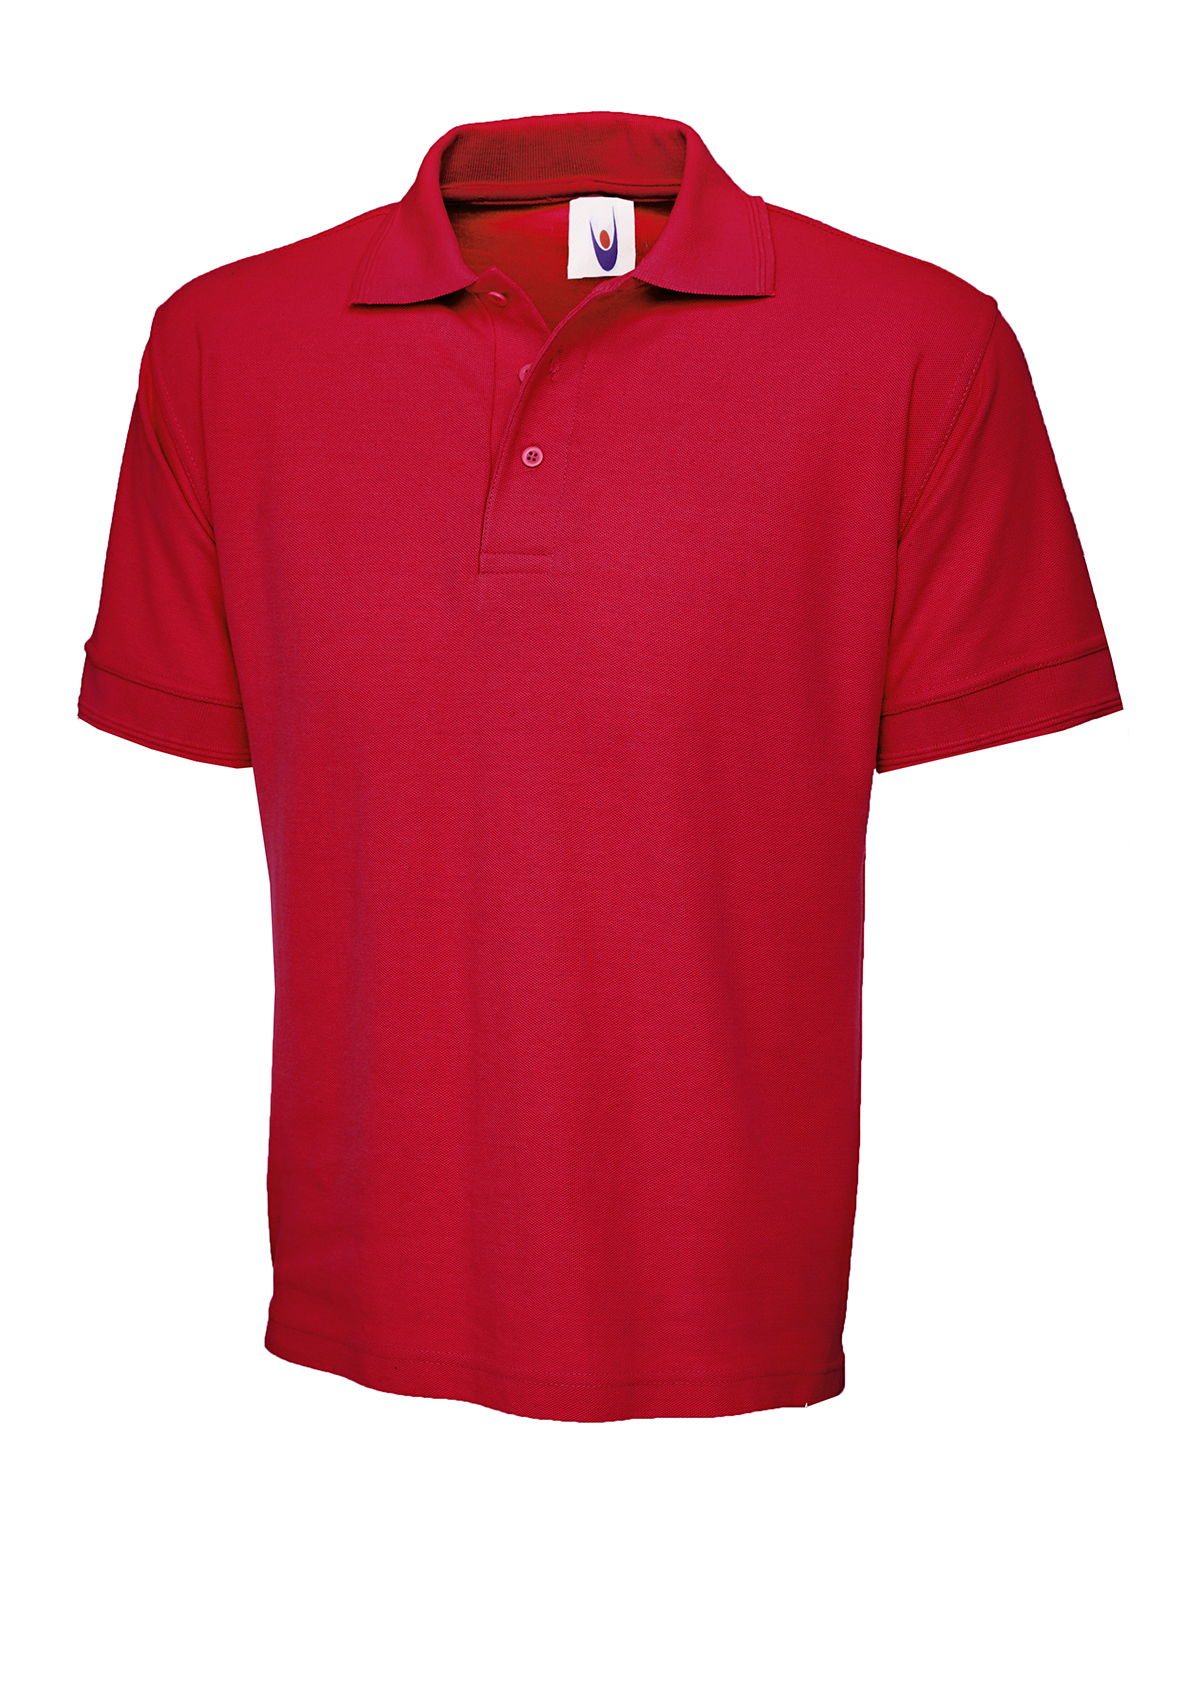 Uneek Ultimate Cotton Polo Shirt